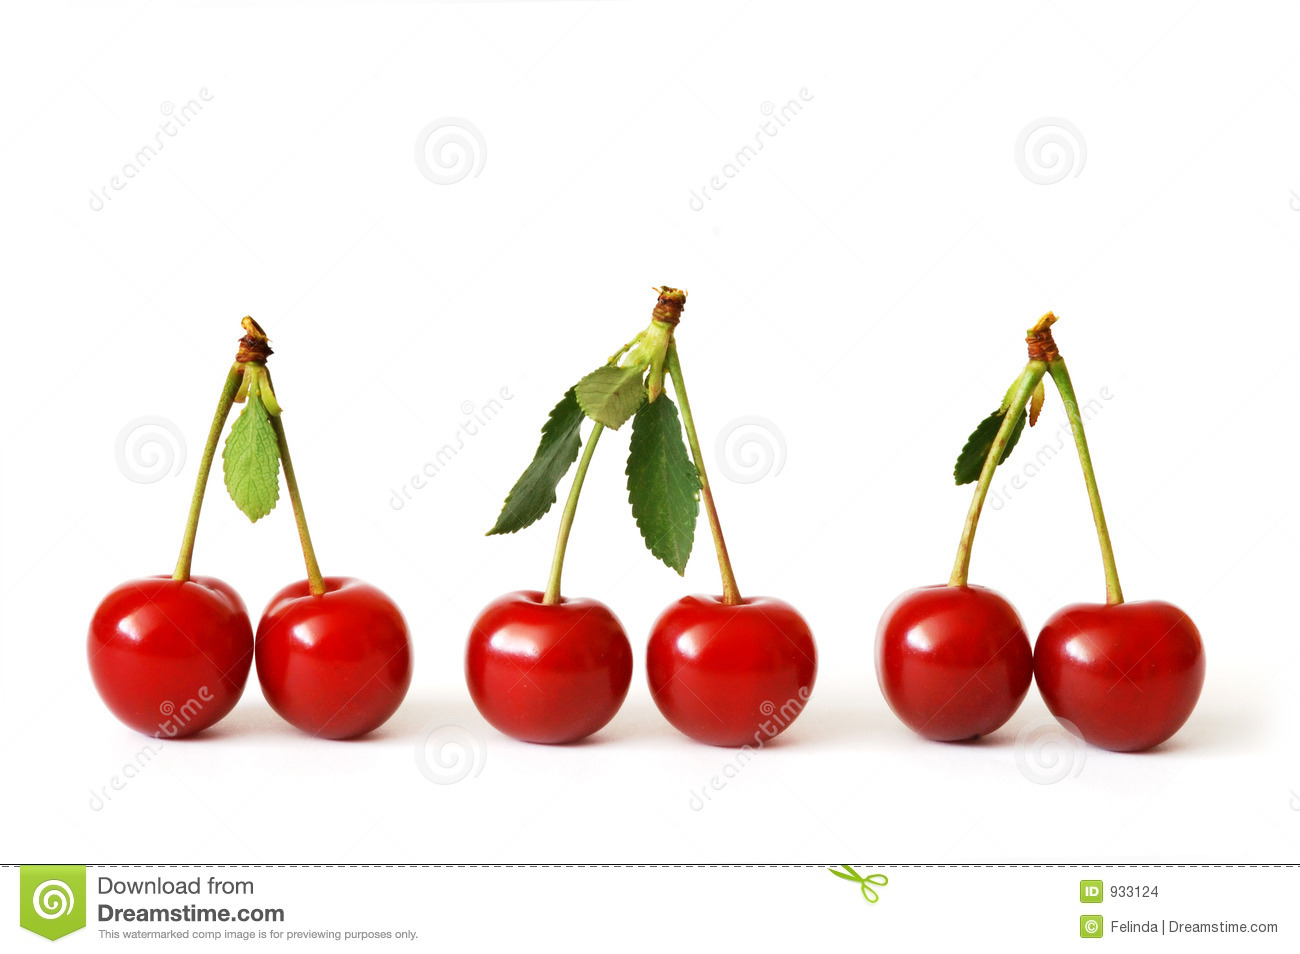 Image result for three pairs of cherries